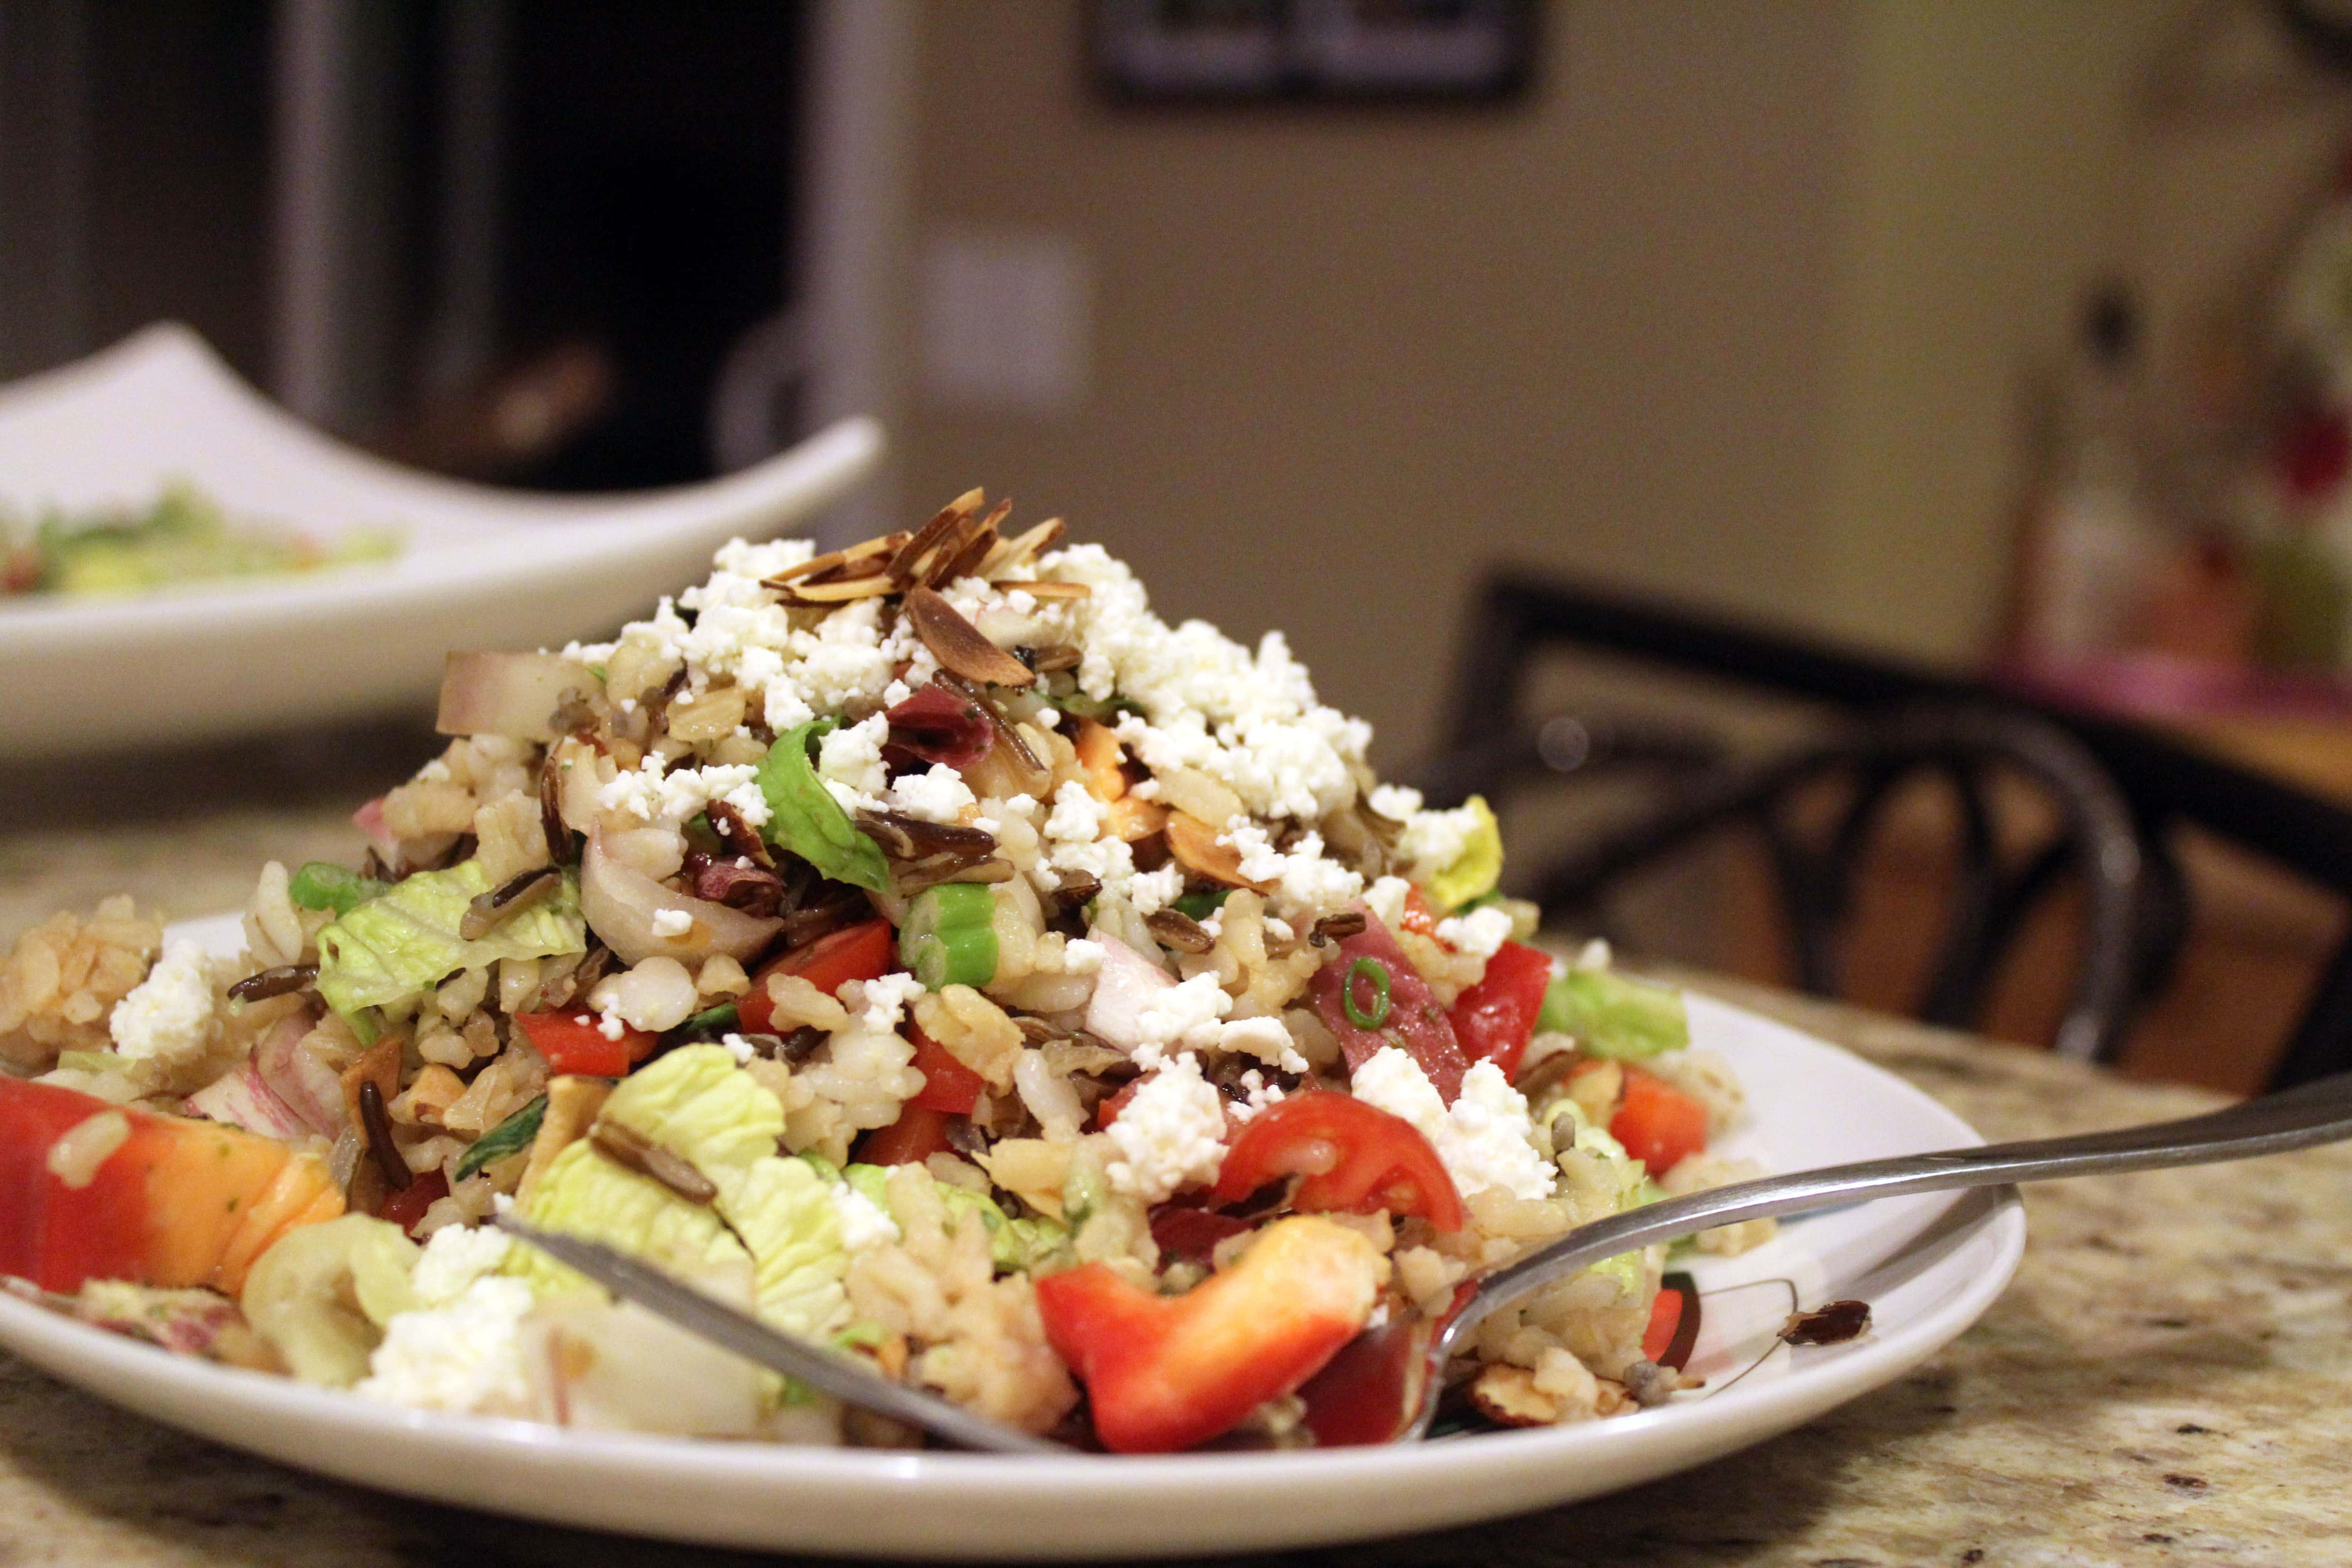 Salad with fork